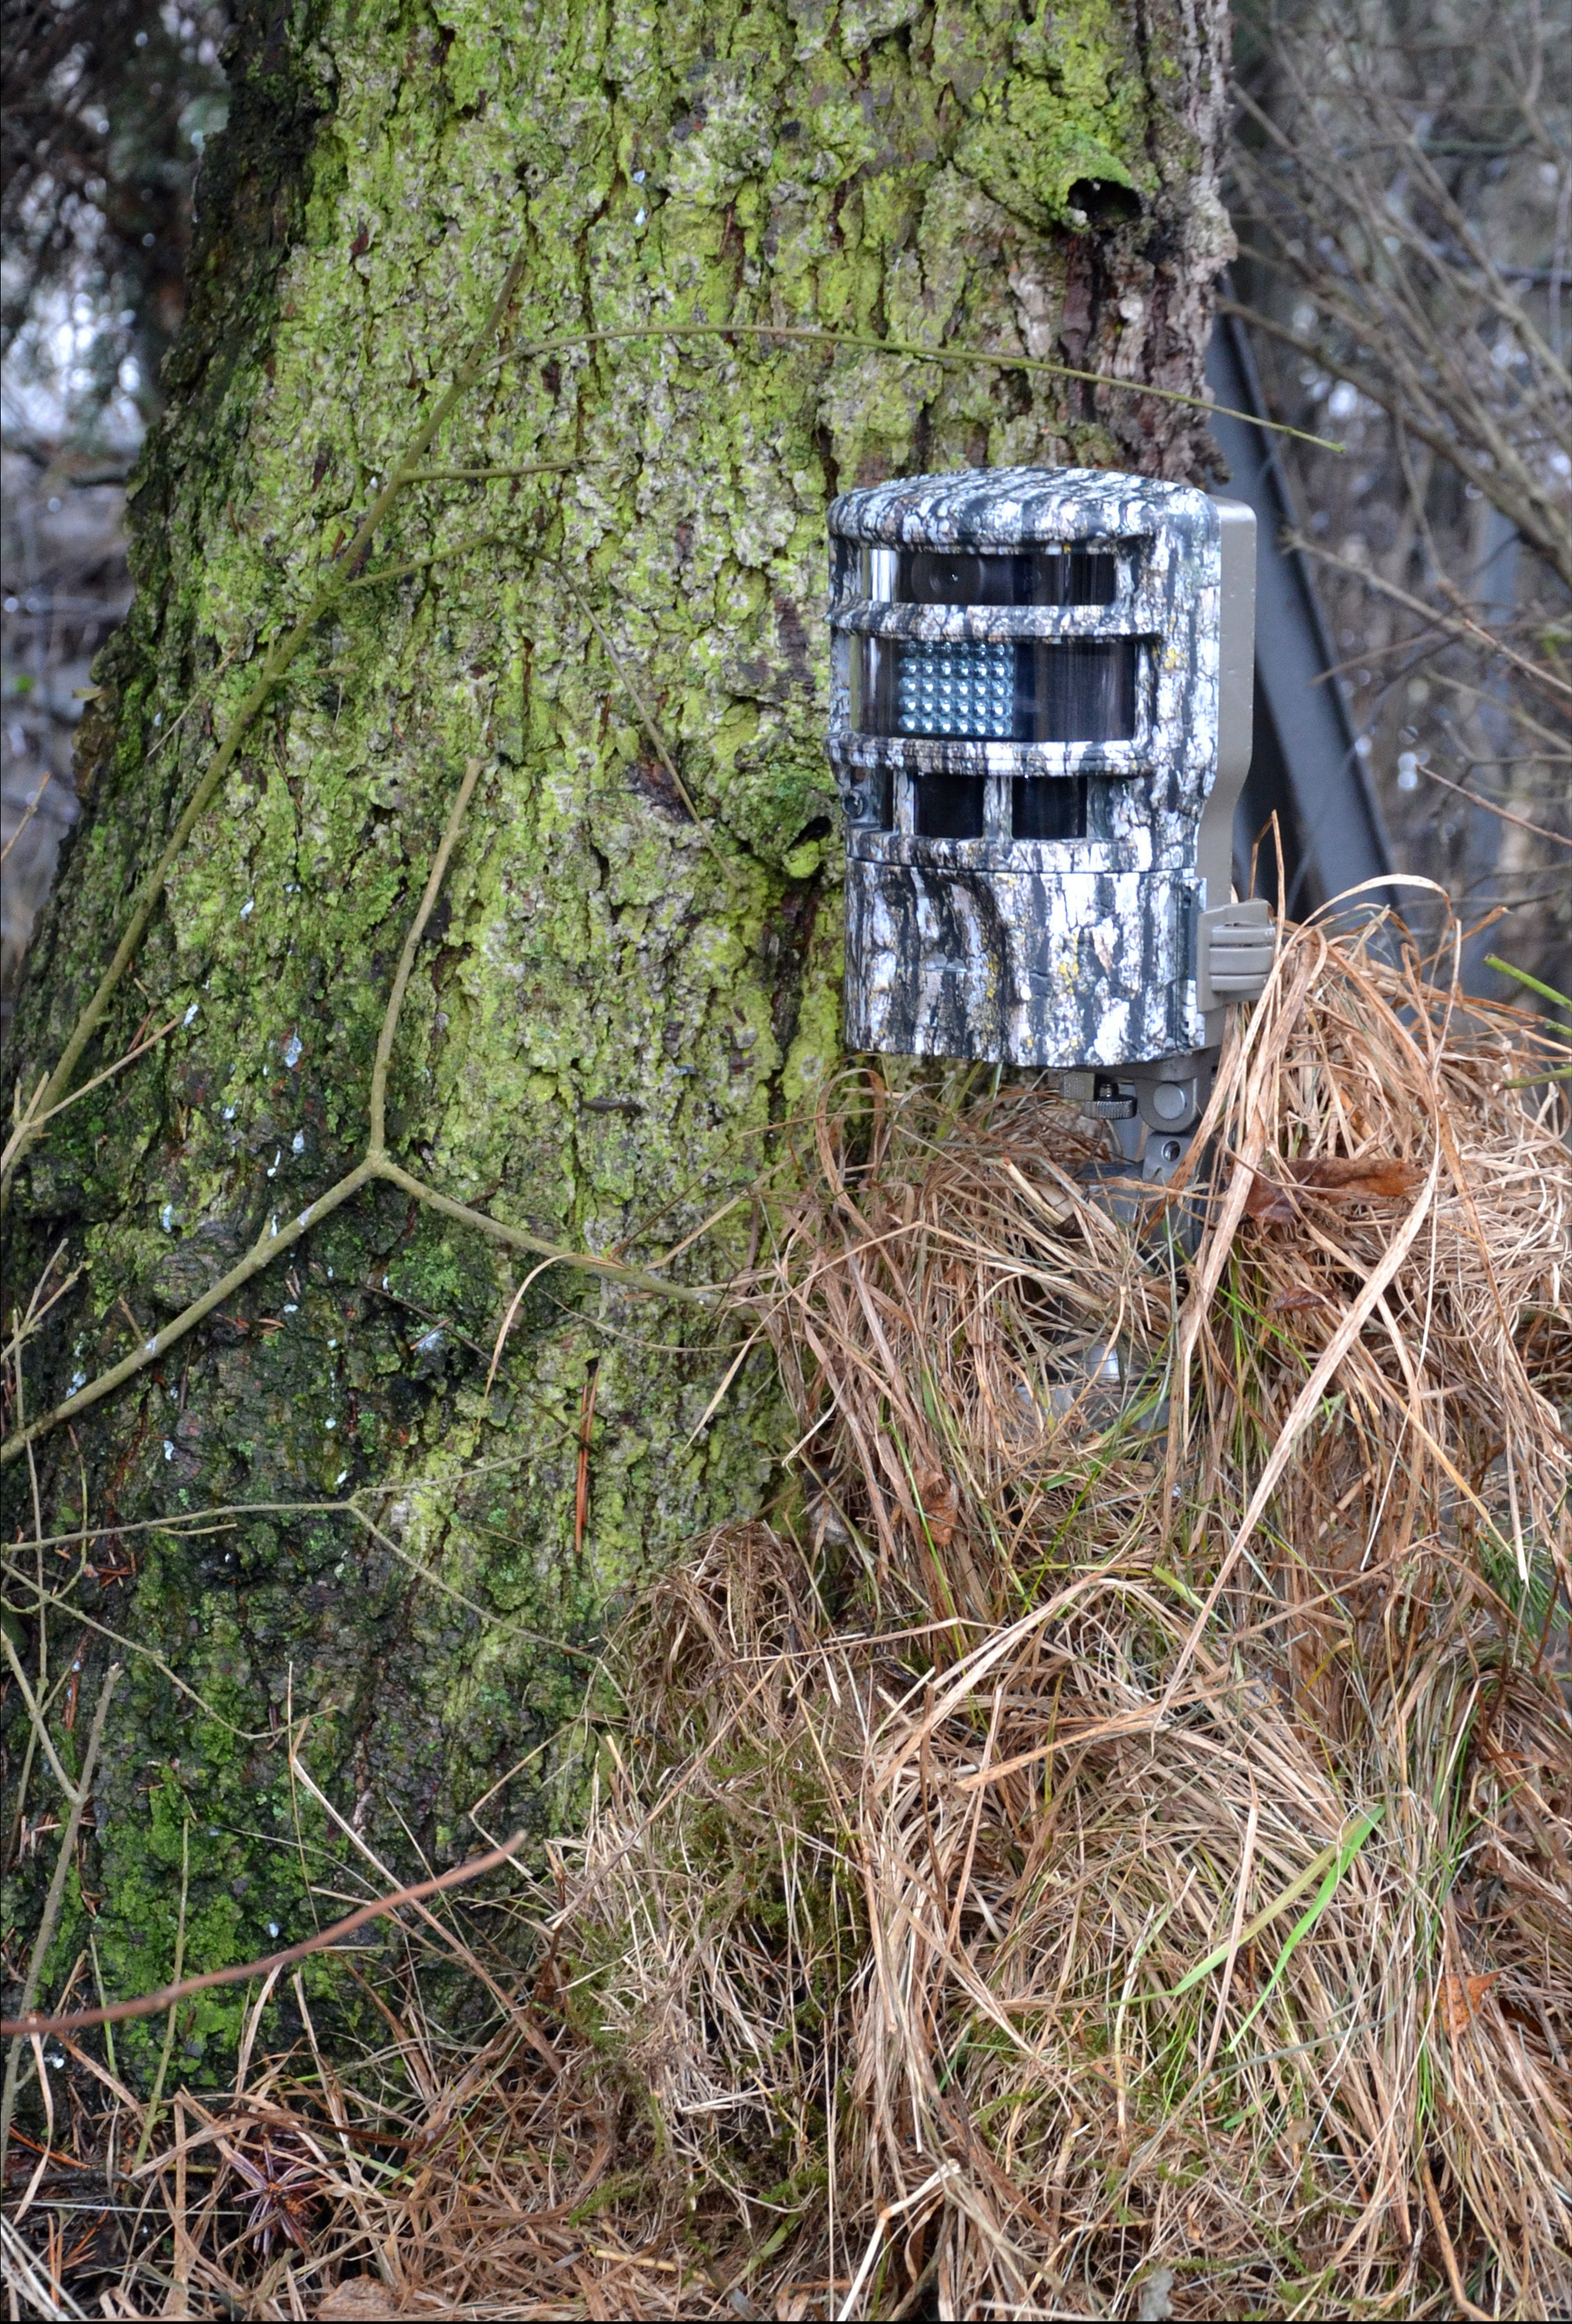 Best Trail Cameras for Deer Hunting Featured Image - PC Tomas Adomaitis via Stockvault